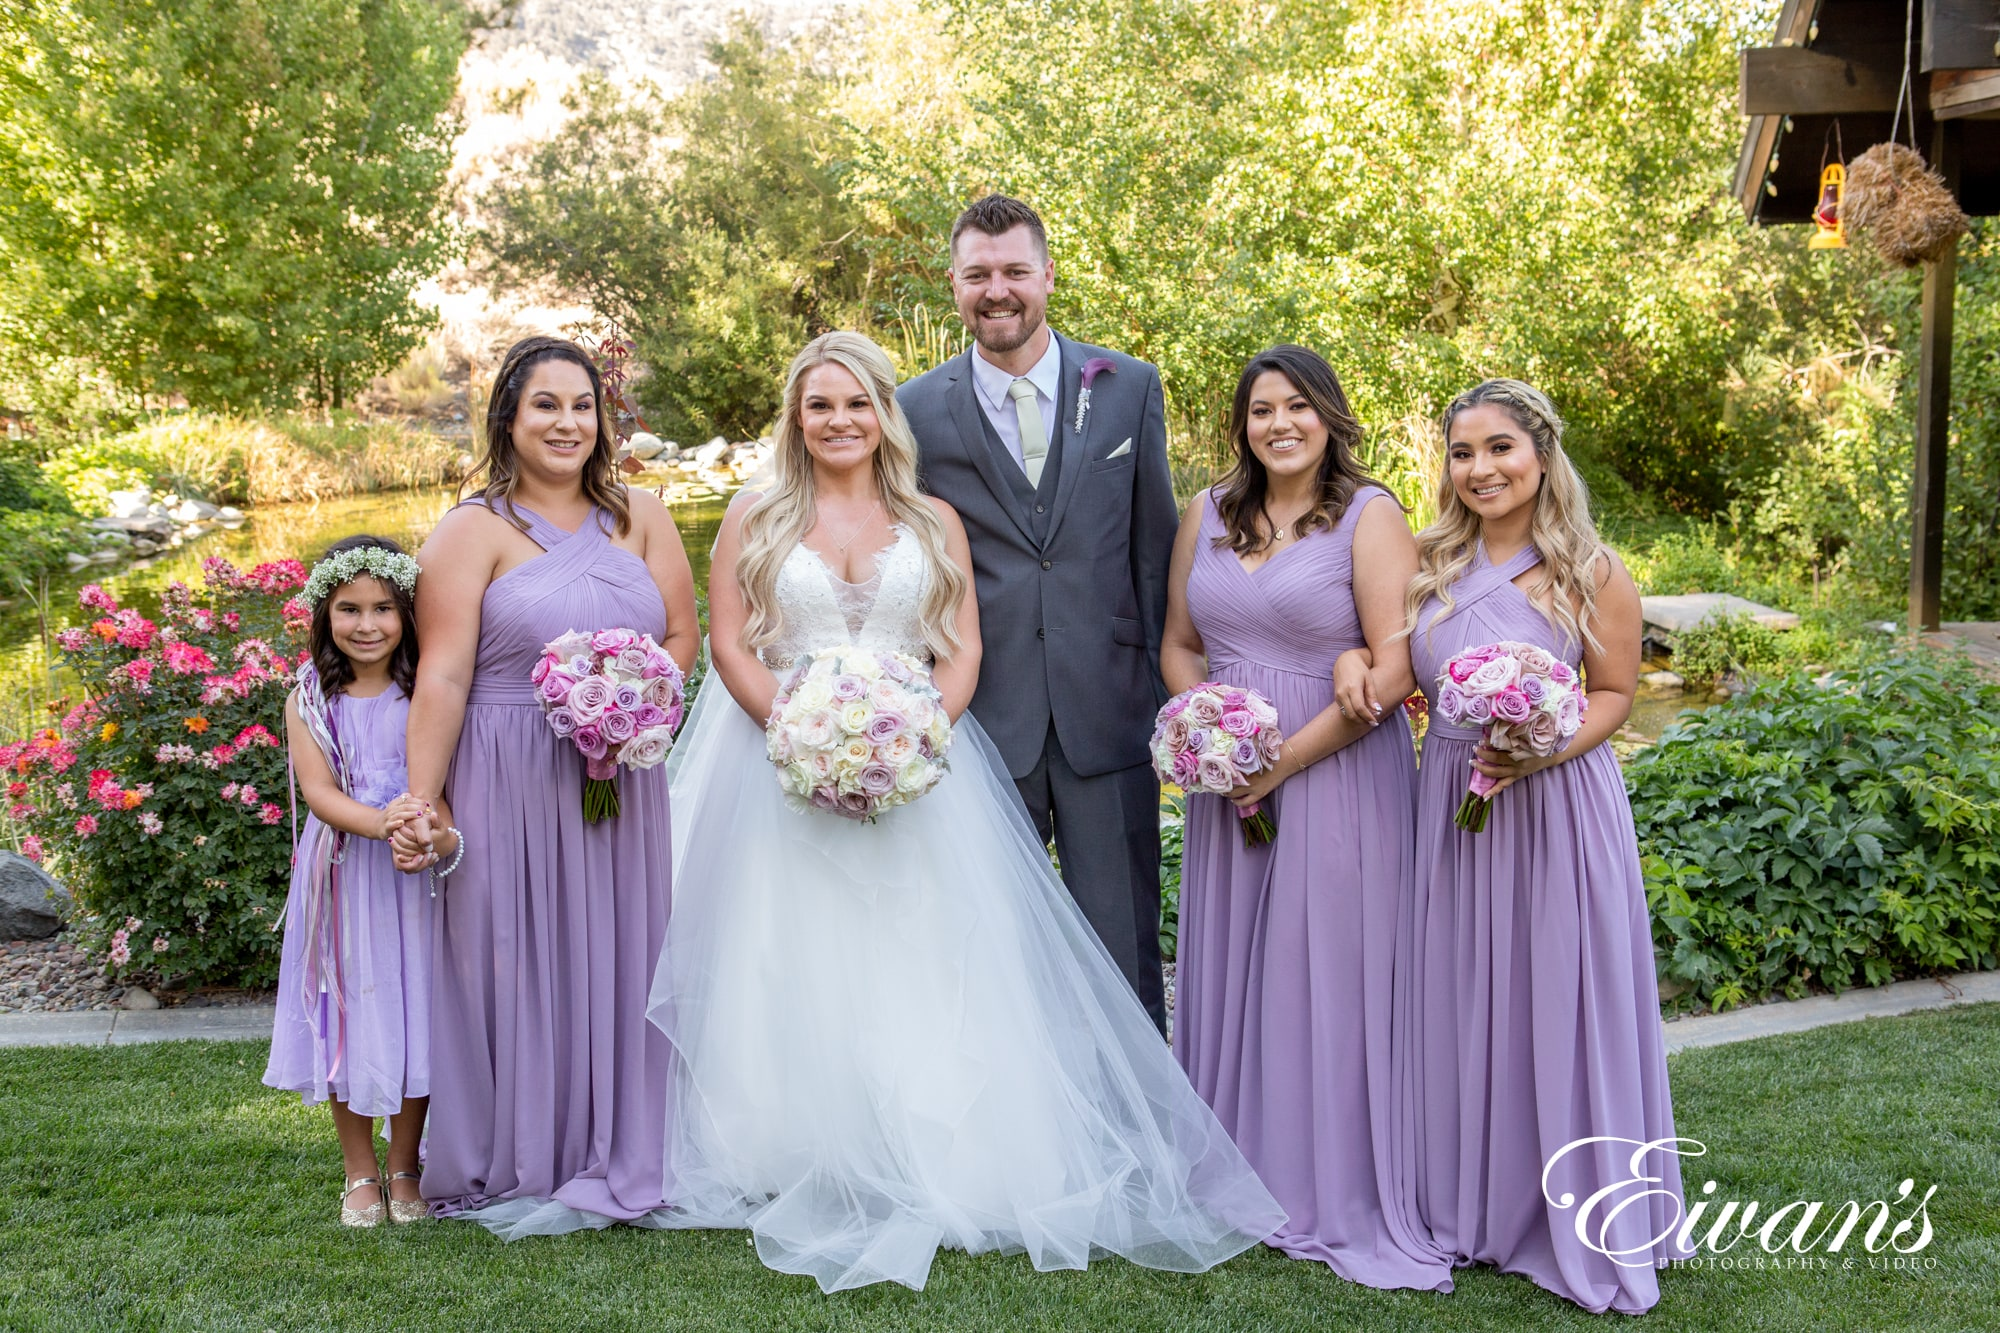 image of a bride, groom, and bridesmaids